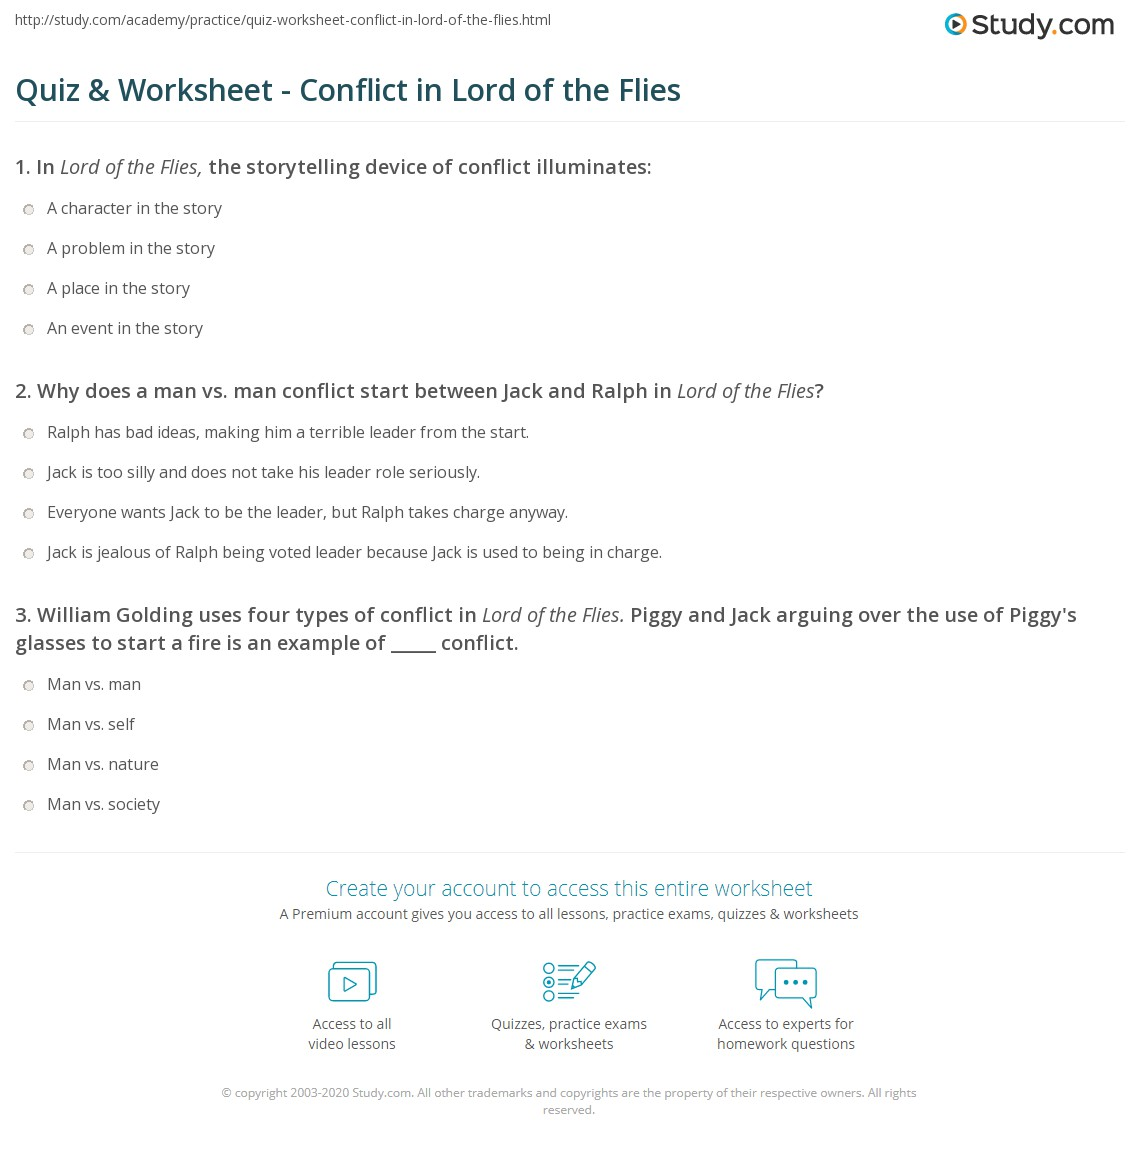 Worksheets Lord Of The Flies Worksheets quiz worksheet conflict in lord of the flies study com print worksheet